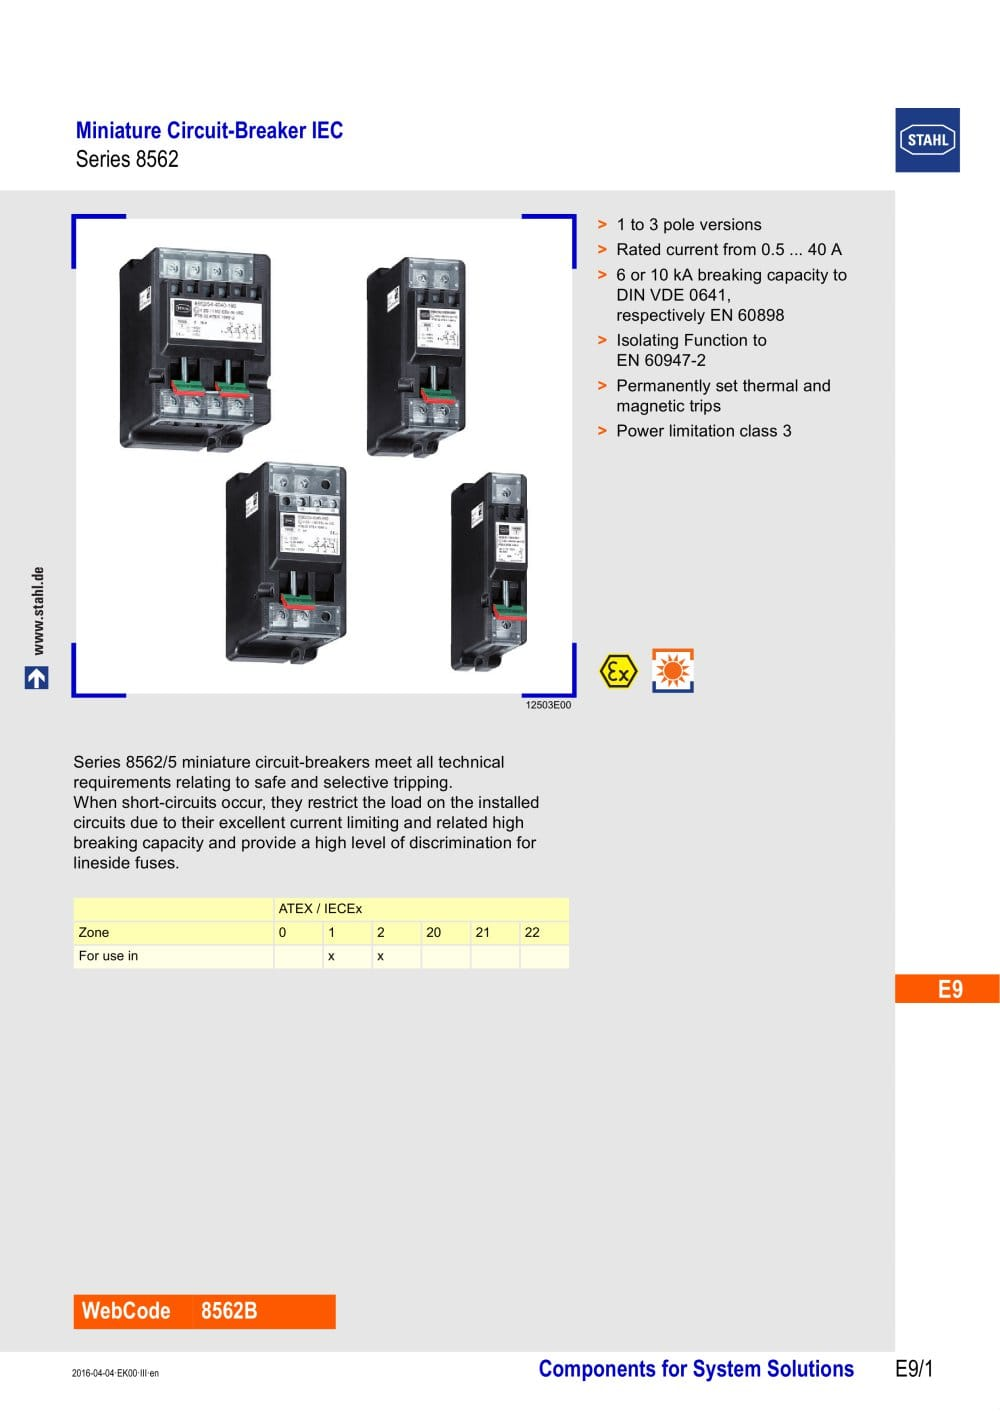 Miniature Circuit Breaker Iec Ls Series 8562 R Stahl Pdf Mcb Is A Device Designed To Protect Circuit39s 1 18 Pages